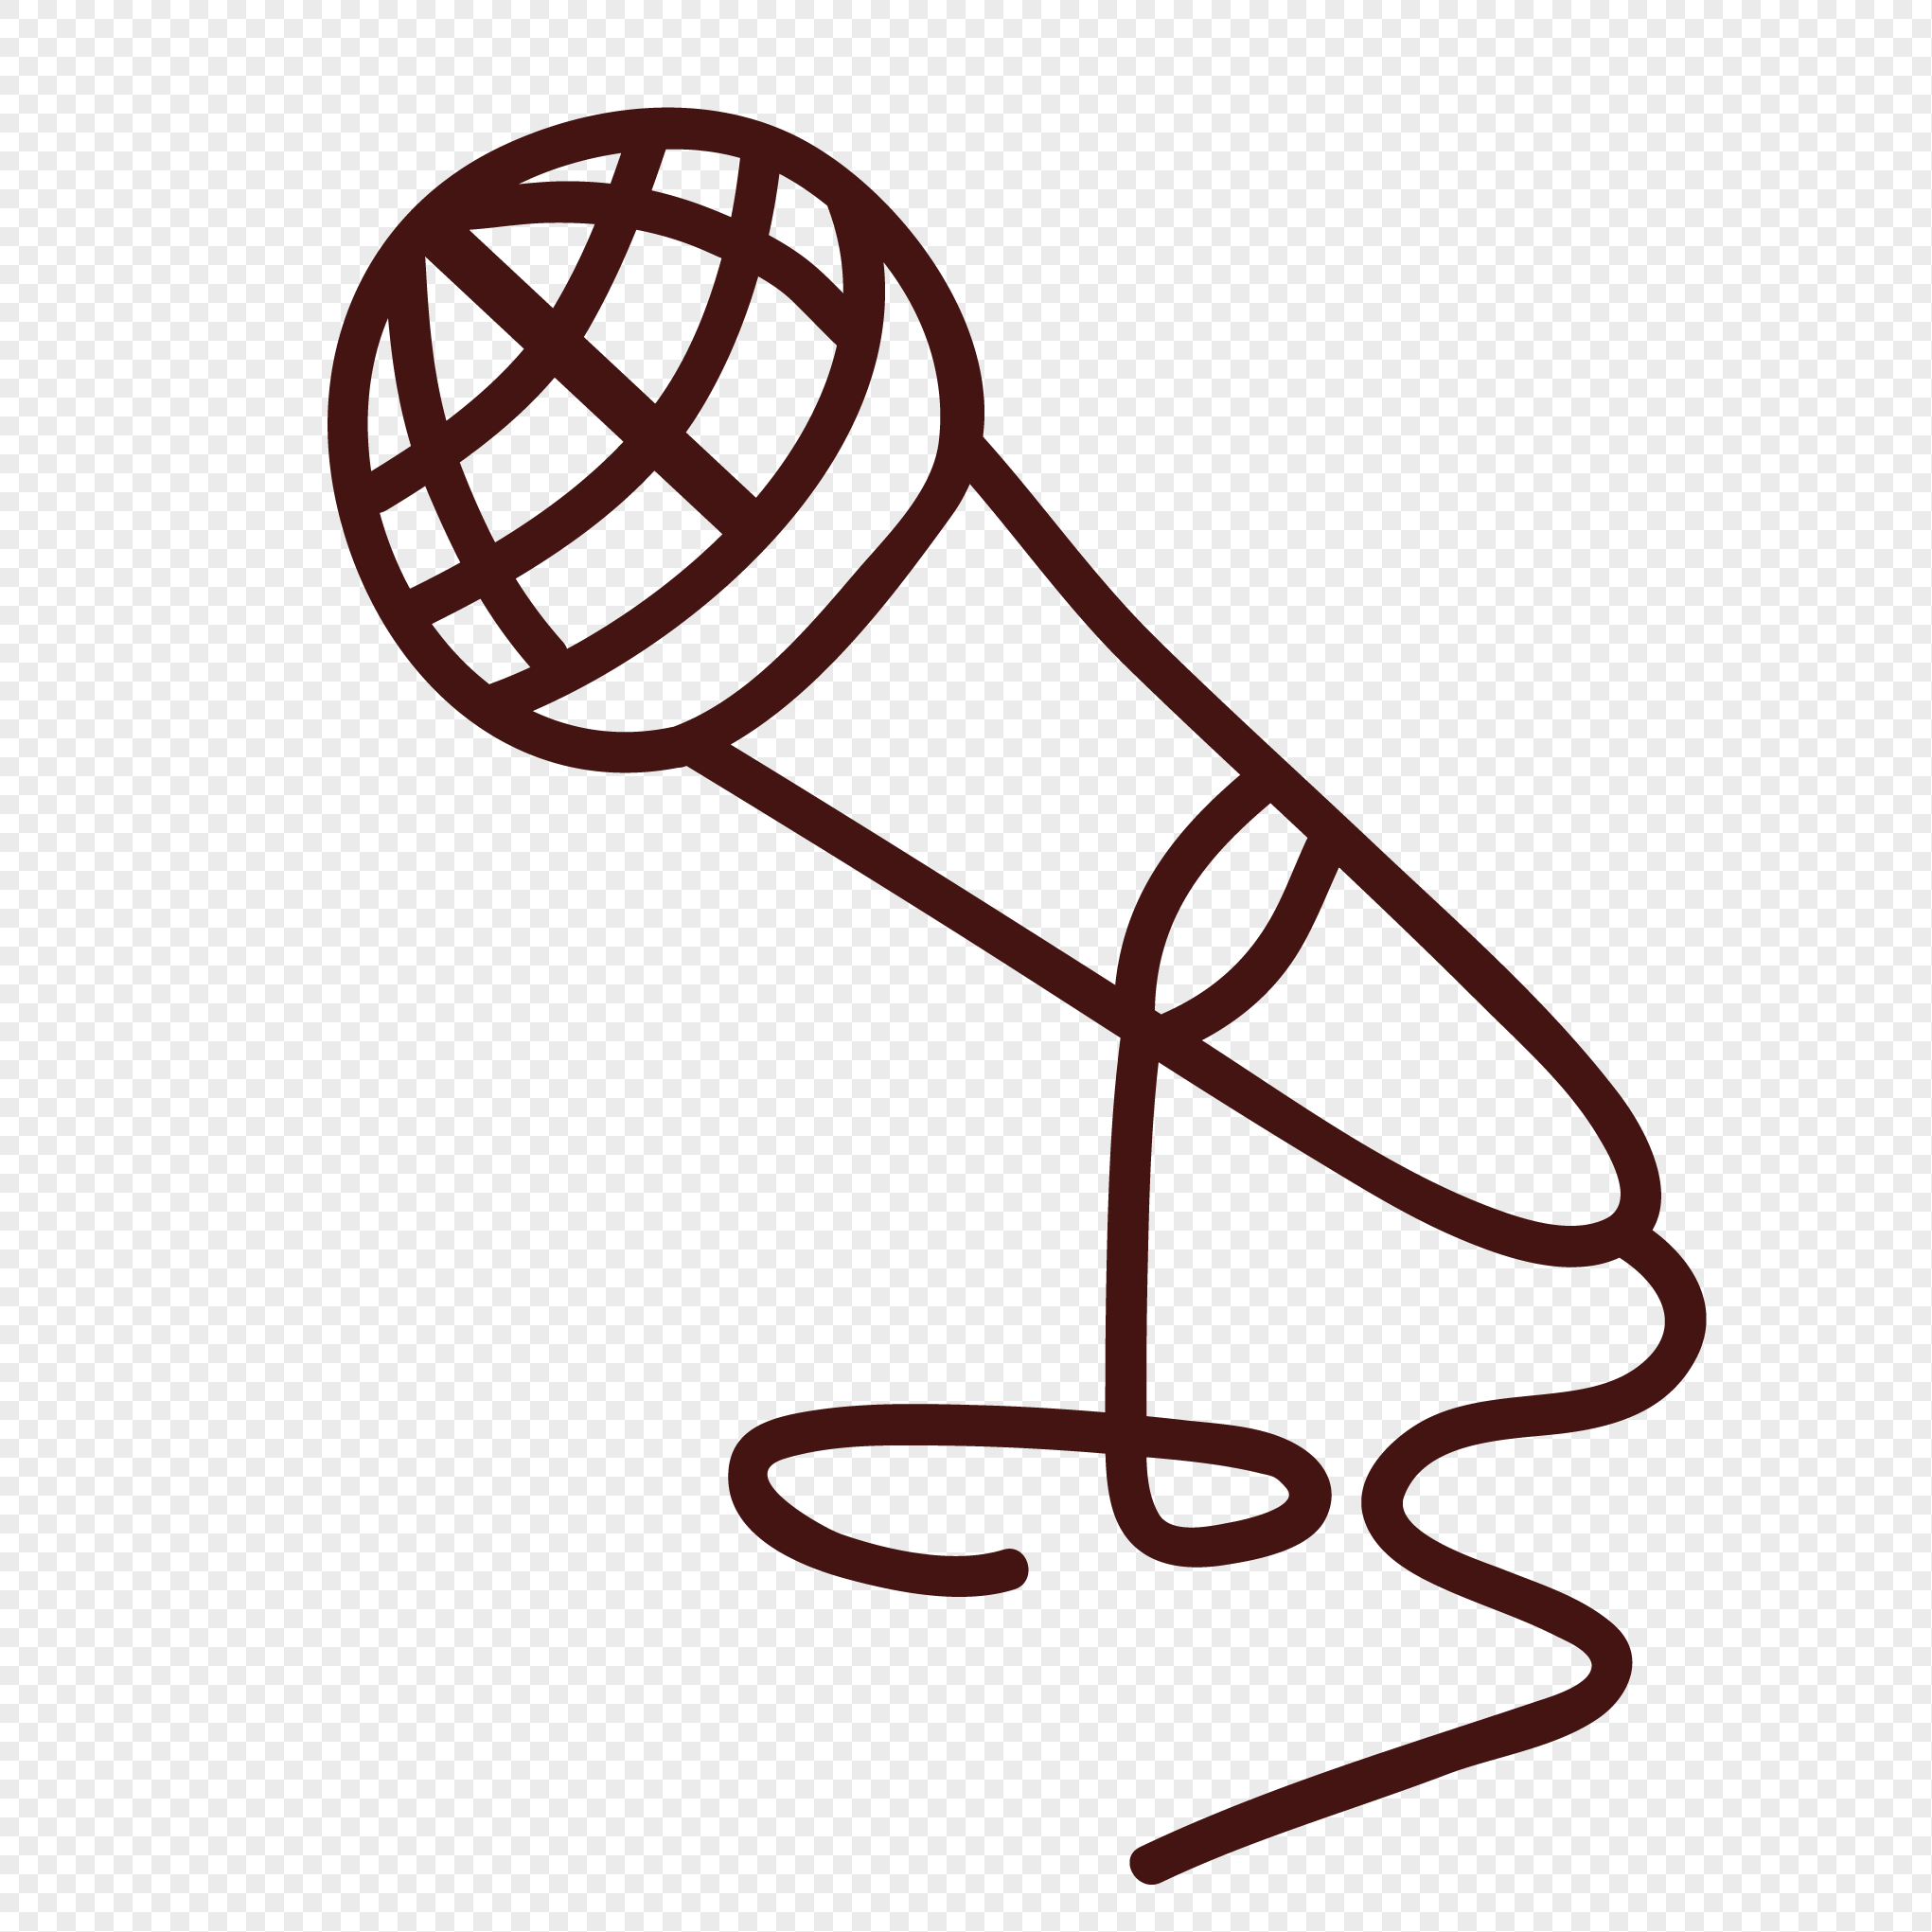 2041x2041 Microphone Vector Image Picture 400333694 Free Download